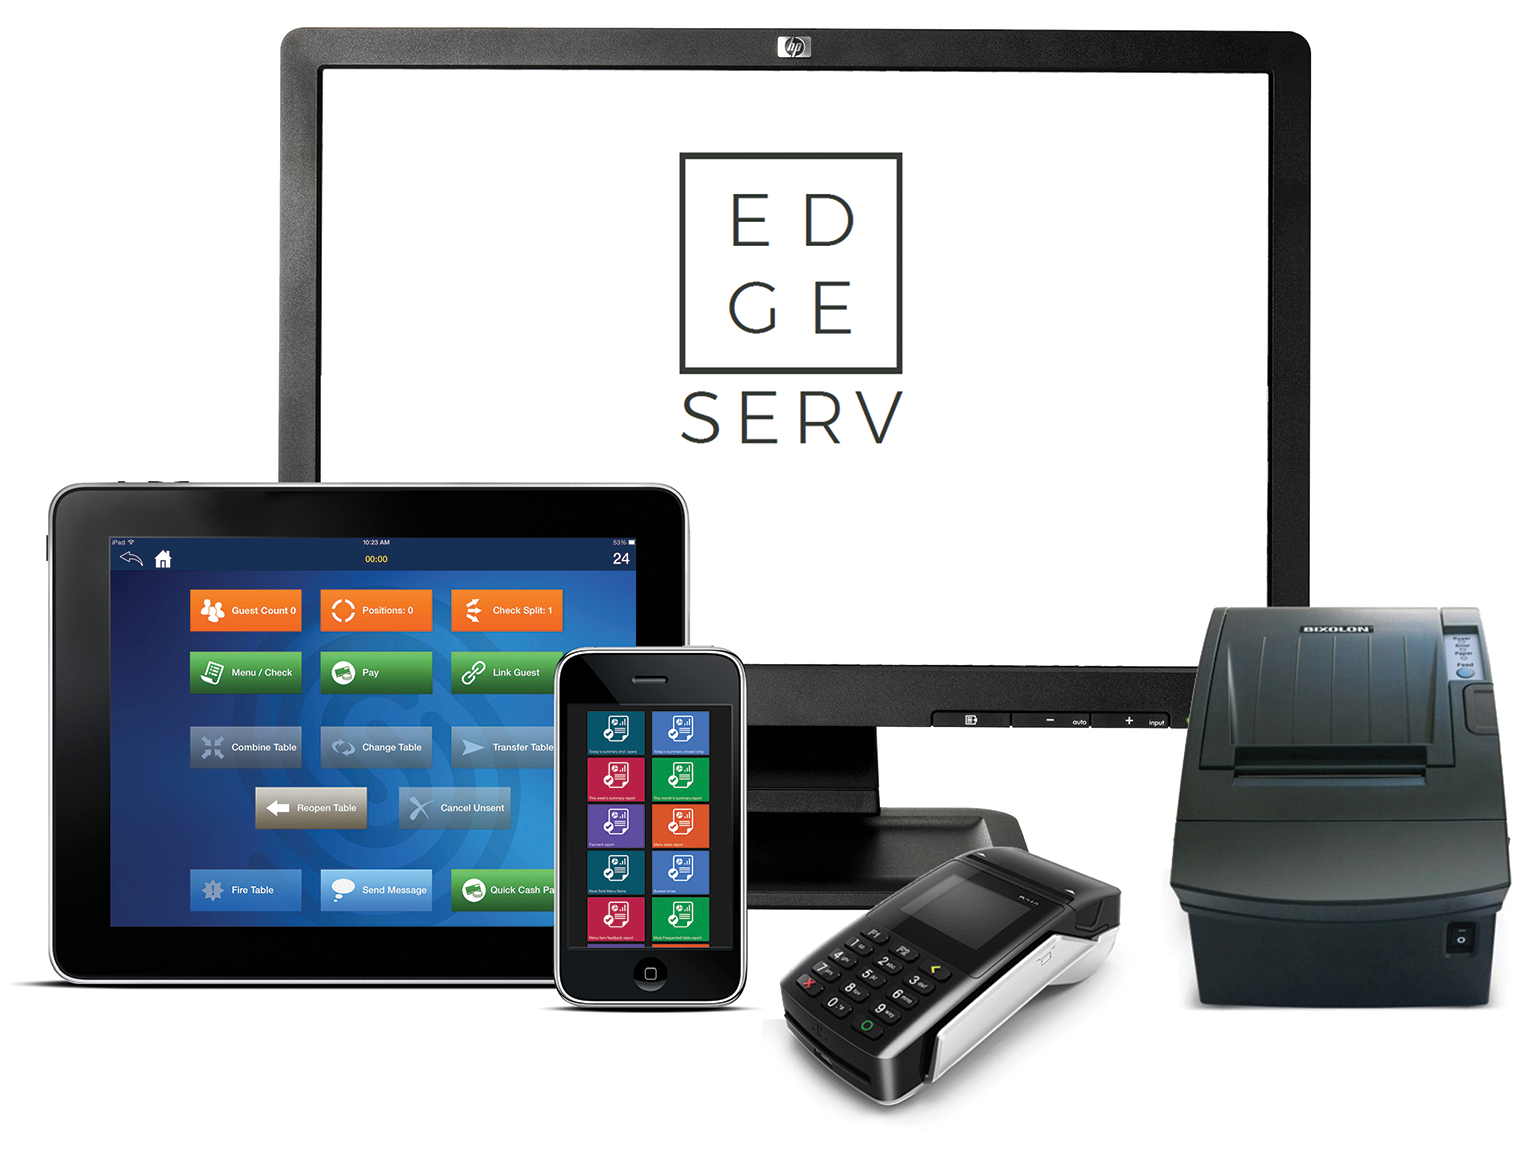 MobileBytes POS for iPad system